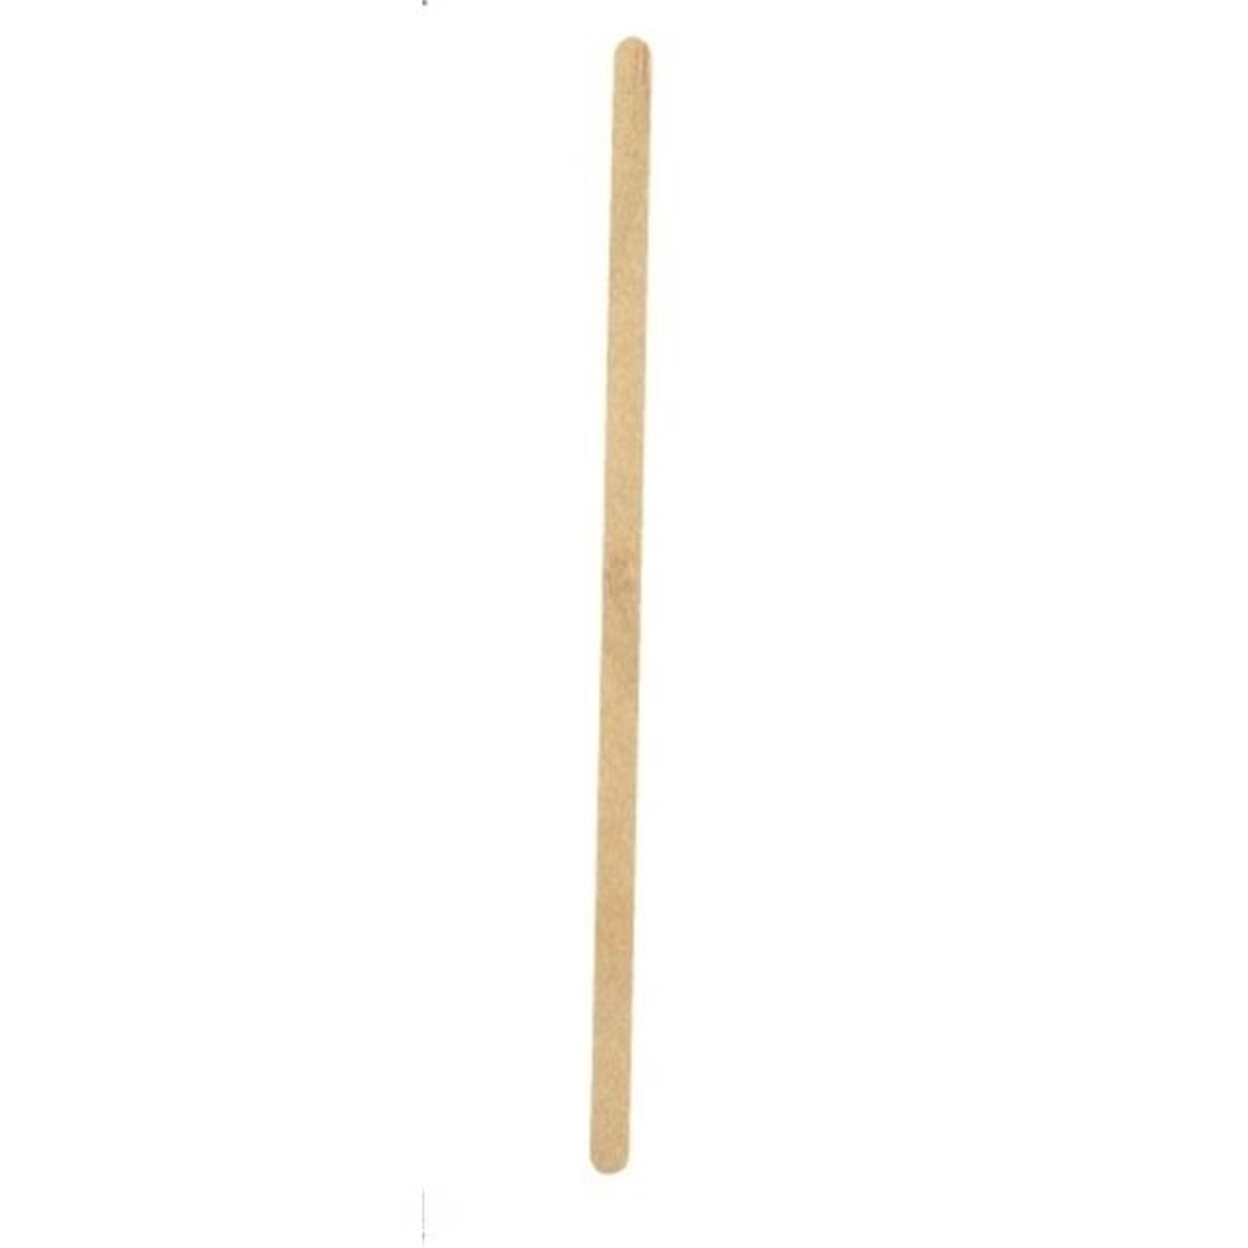 Royal Paper Products RPP R810 5.5 in. Regular Wood Coffee Stirrers 10-1000 5a3c0401e2246160c847bc9b